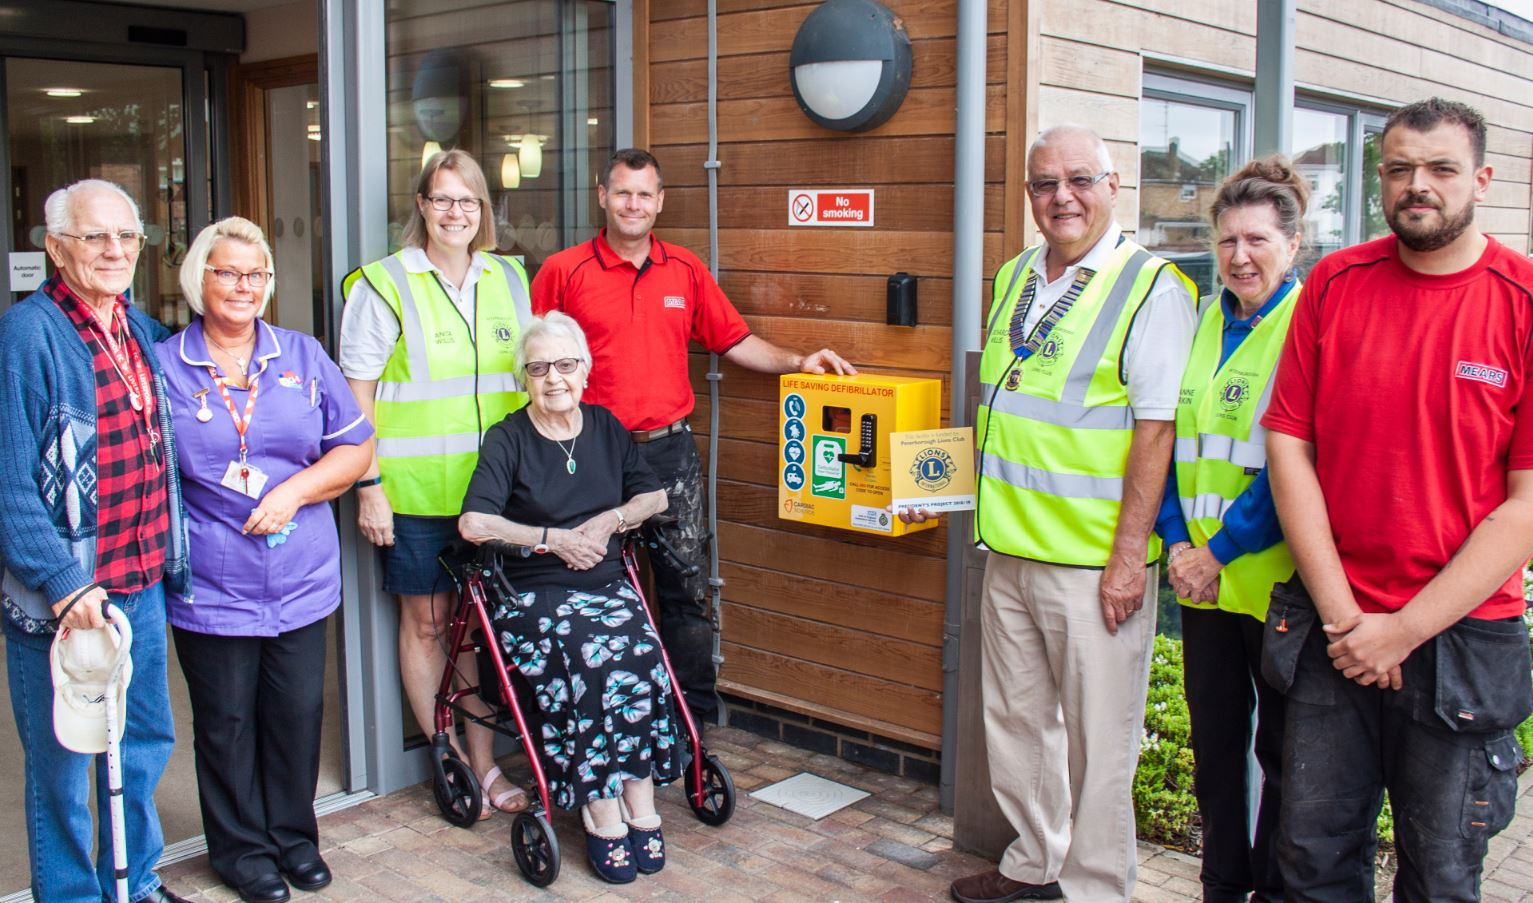 Defibrillator for Stanground thanks to the generosity of Peterborough Lions Club